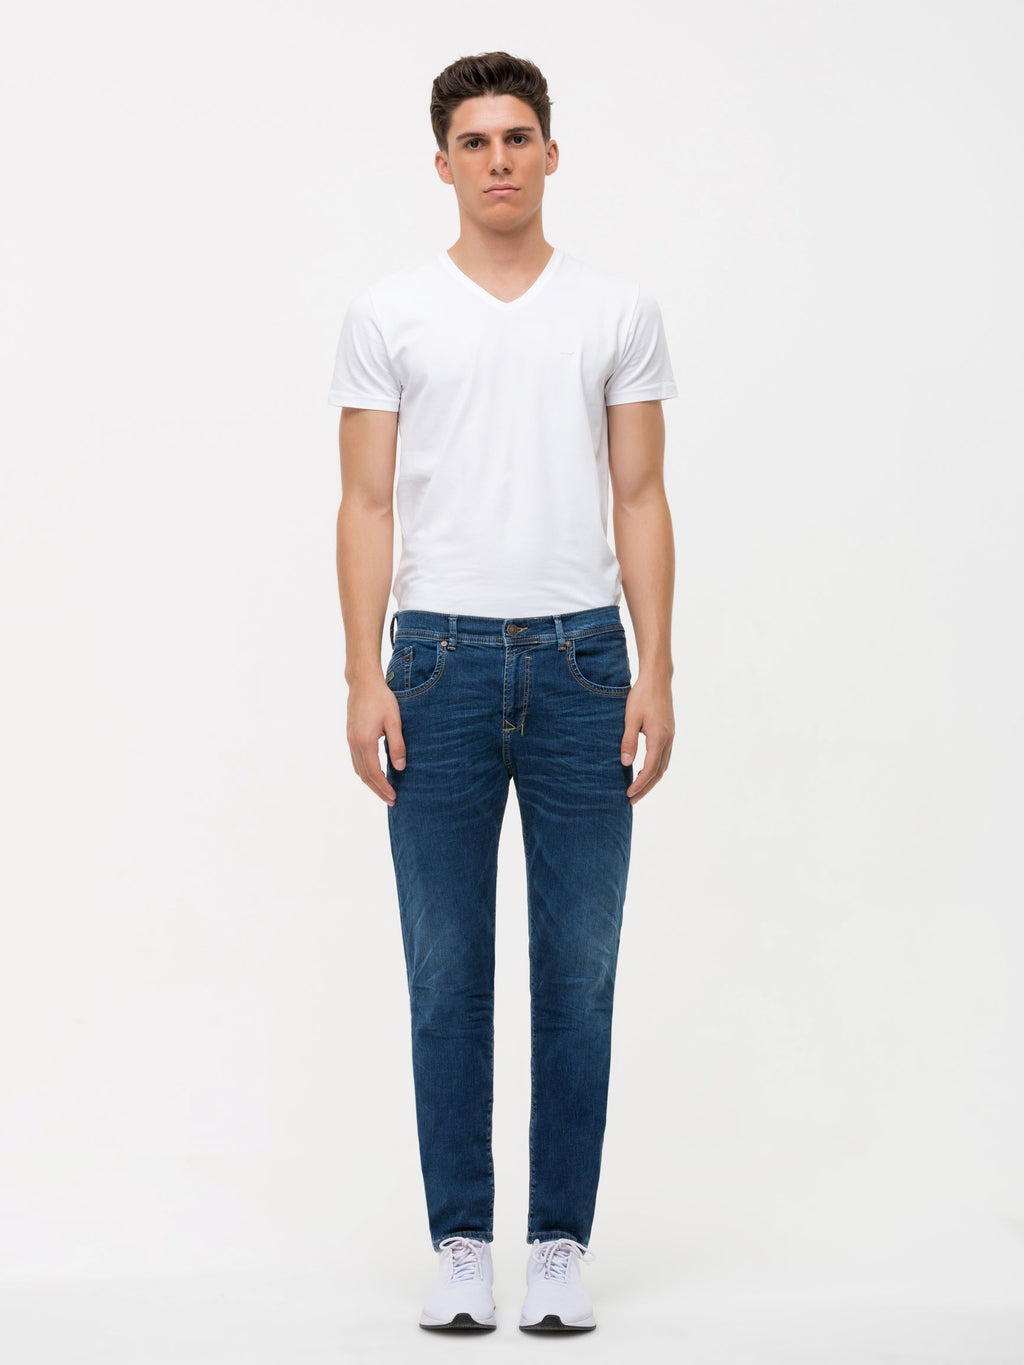 LTB New Diego Jeans - Helion Wash - MitchellMcCabe